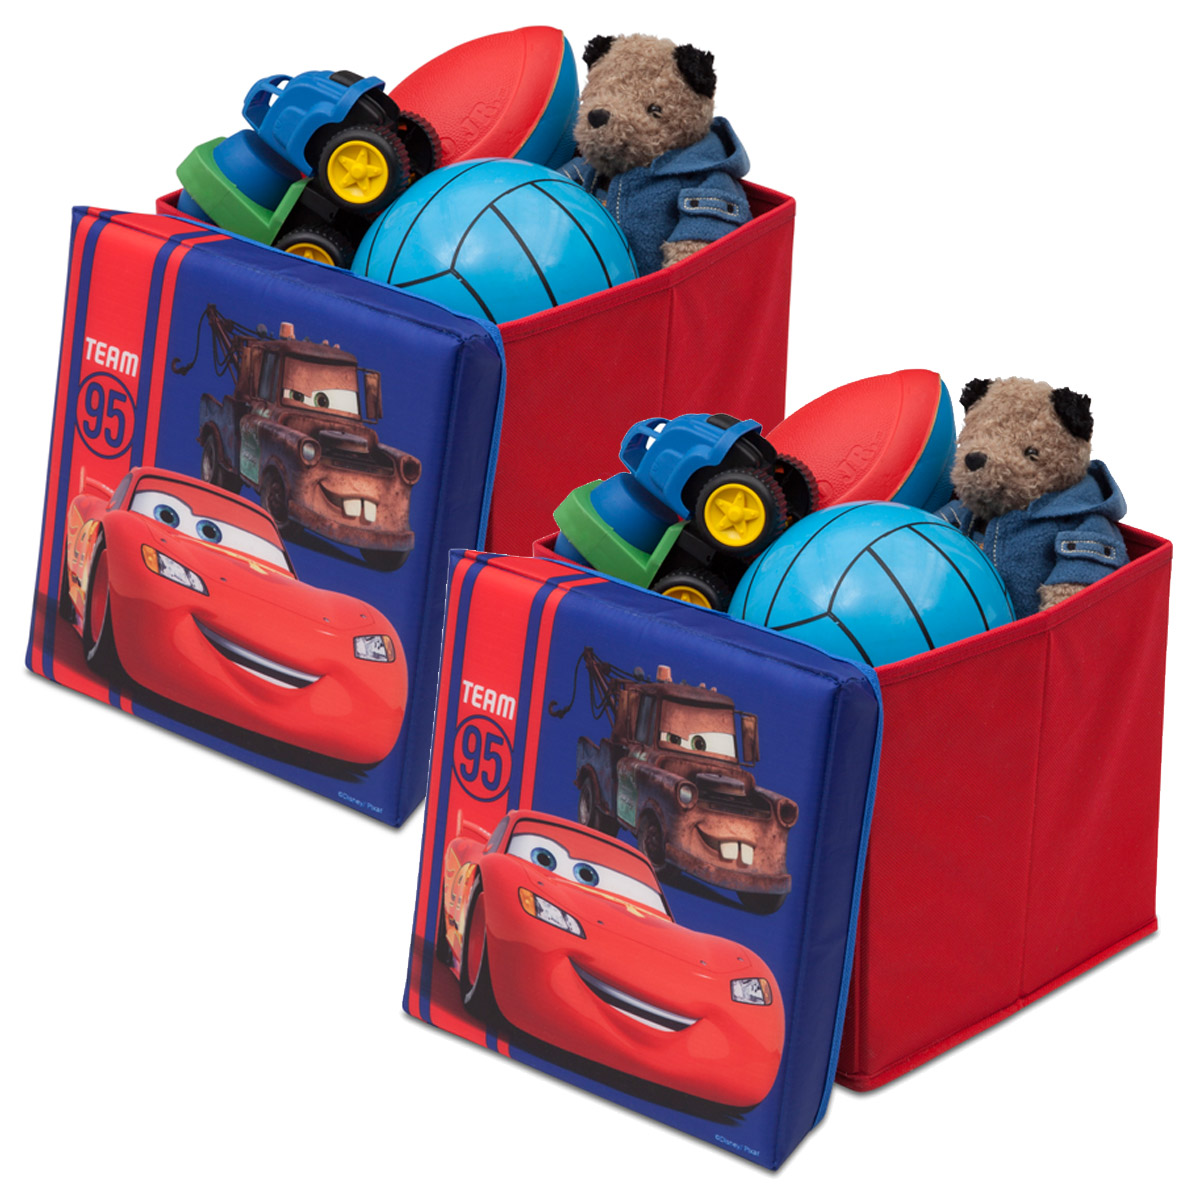 2er set disney cars canvas spielzeugkiste aufbewahrungsbox. Black Bedroom Furniture Sets. Home Design Ideas